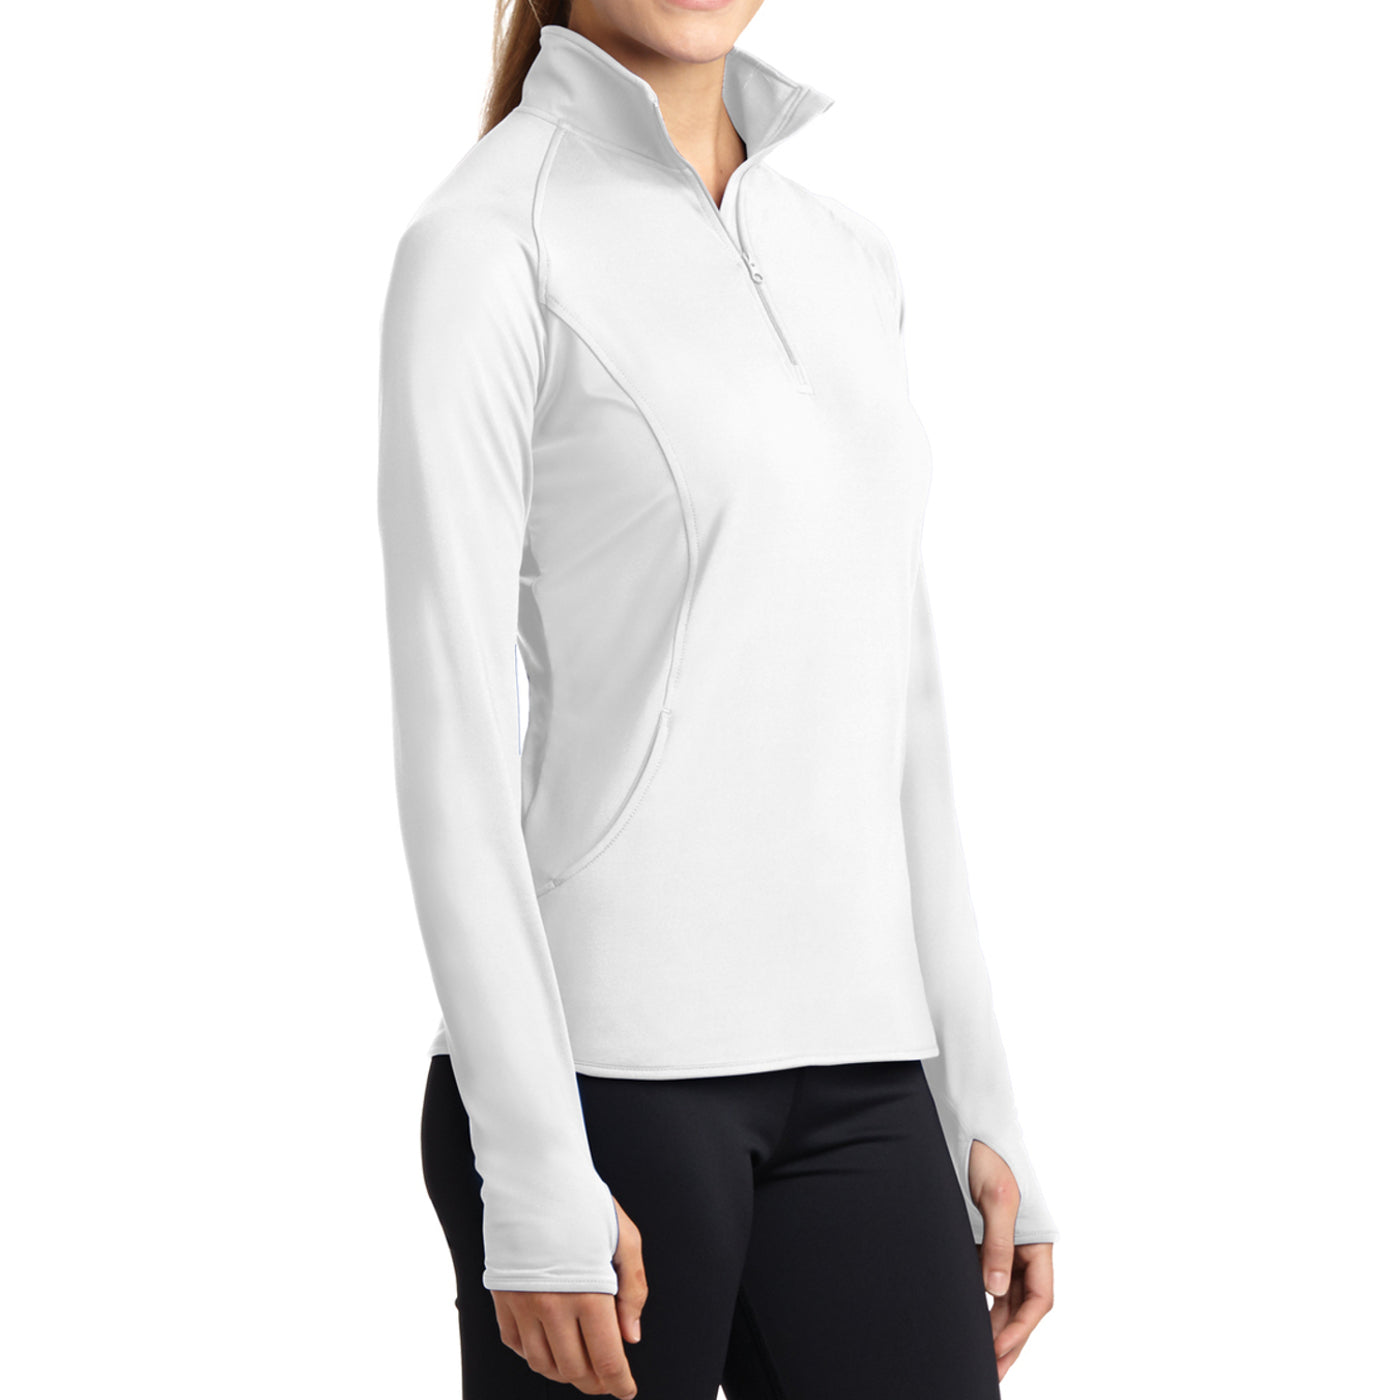 Women's Sport Wick Stretch 1/2 Zip Pullover - White - Side